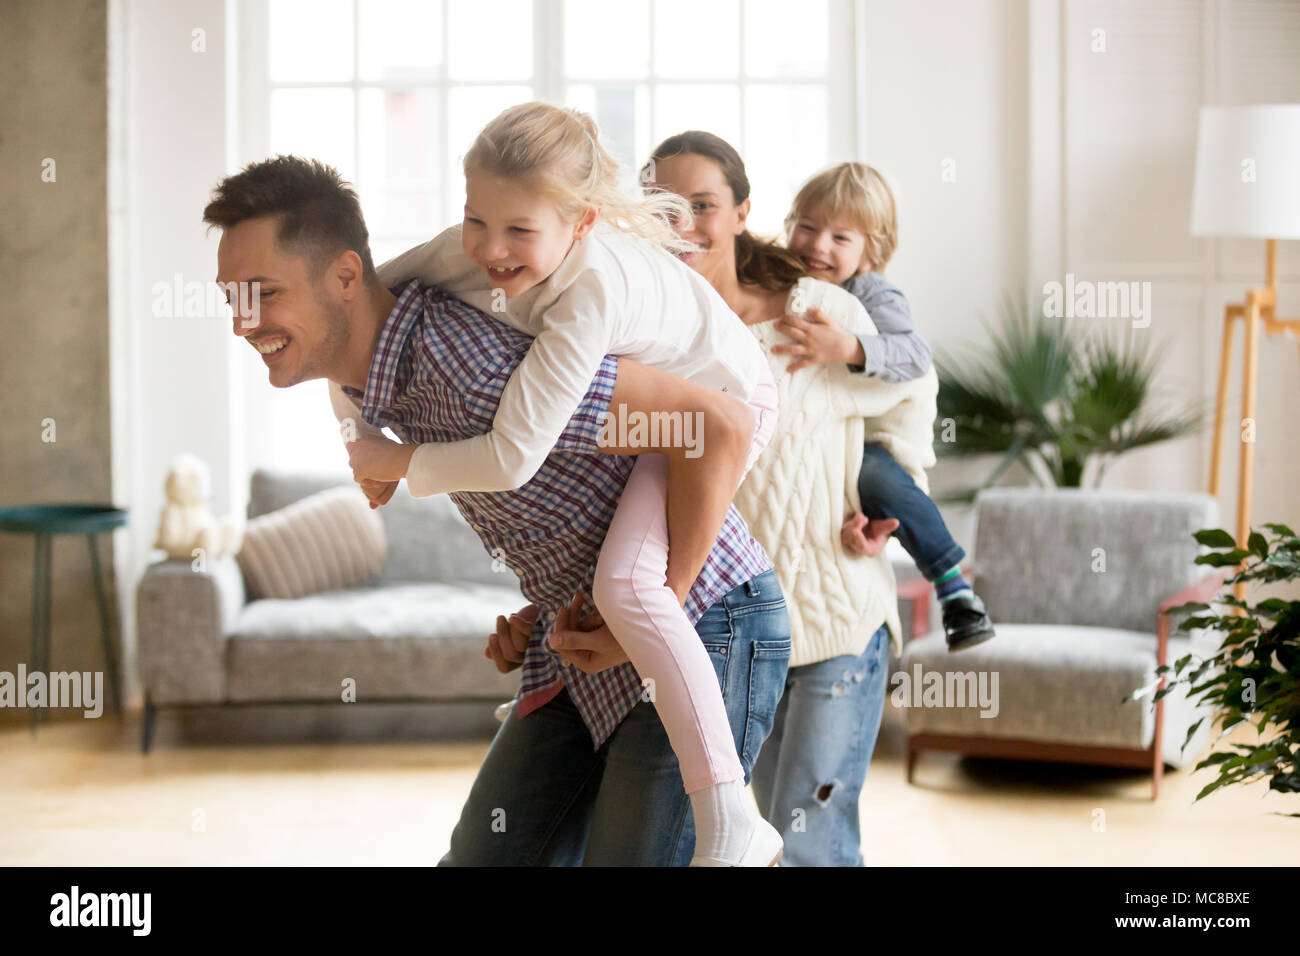 Happy loving dad piggybacking little daughter playing with family at home, smiling parents carrying kids on back, children boy and girl having fun tog Stock Photo